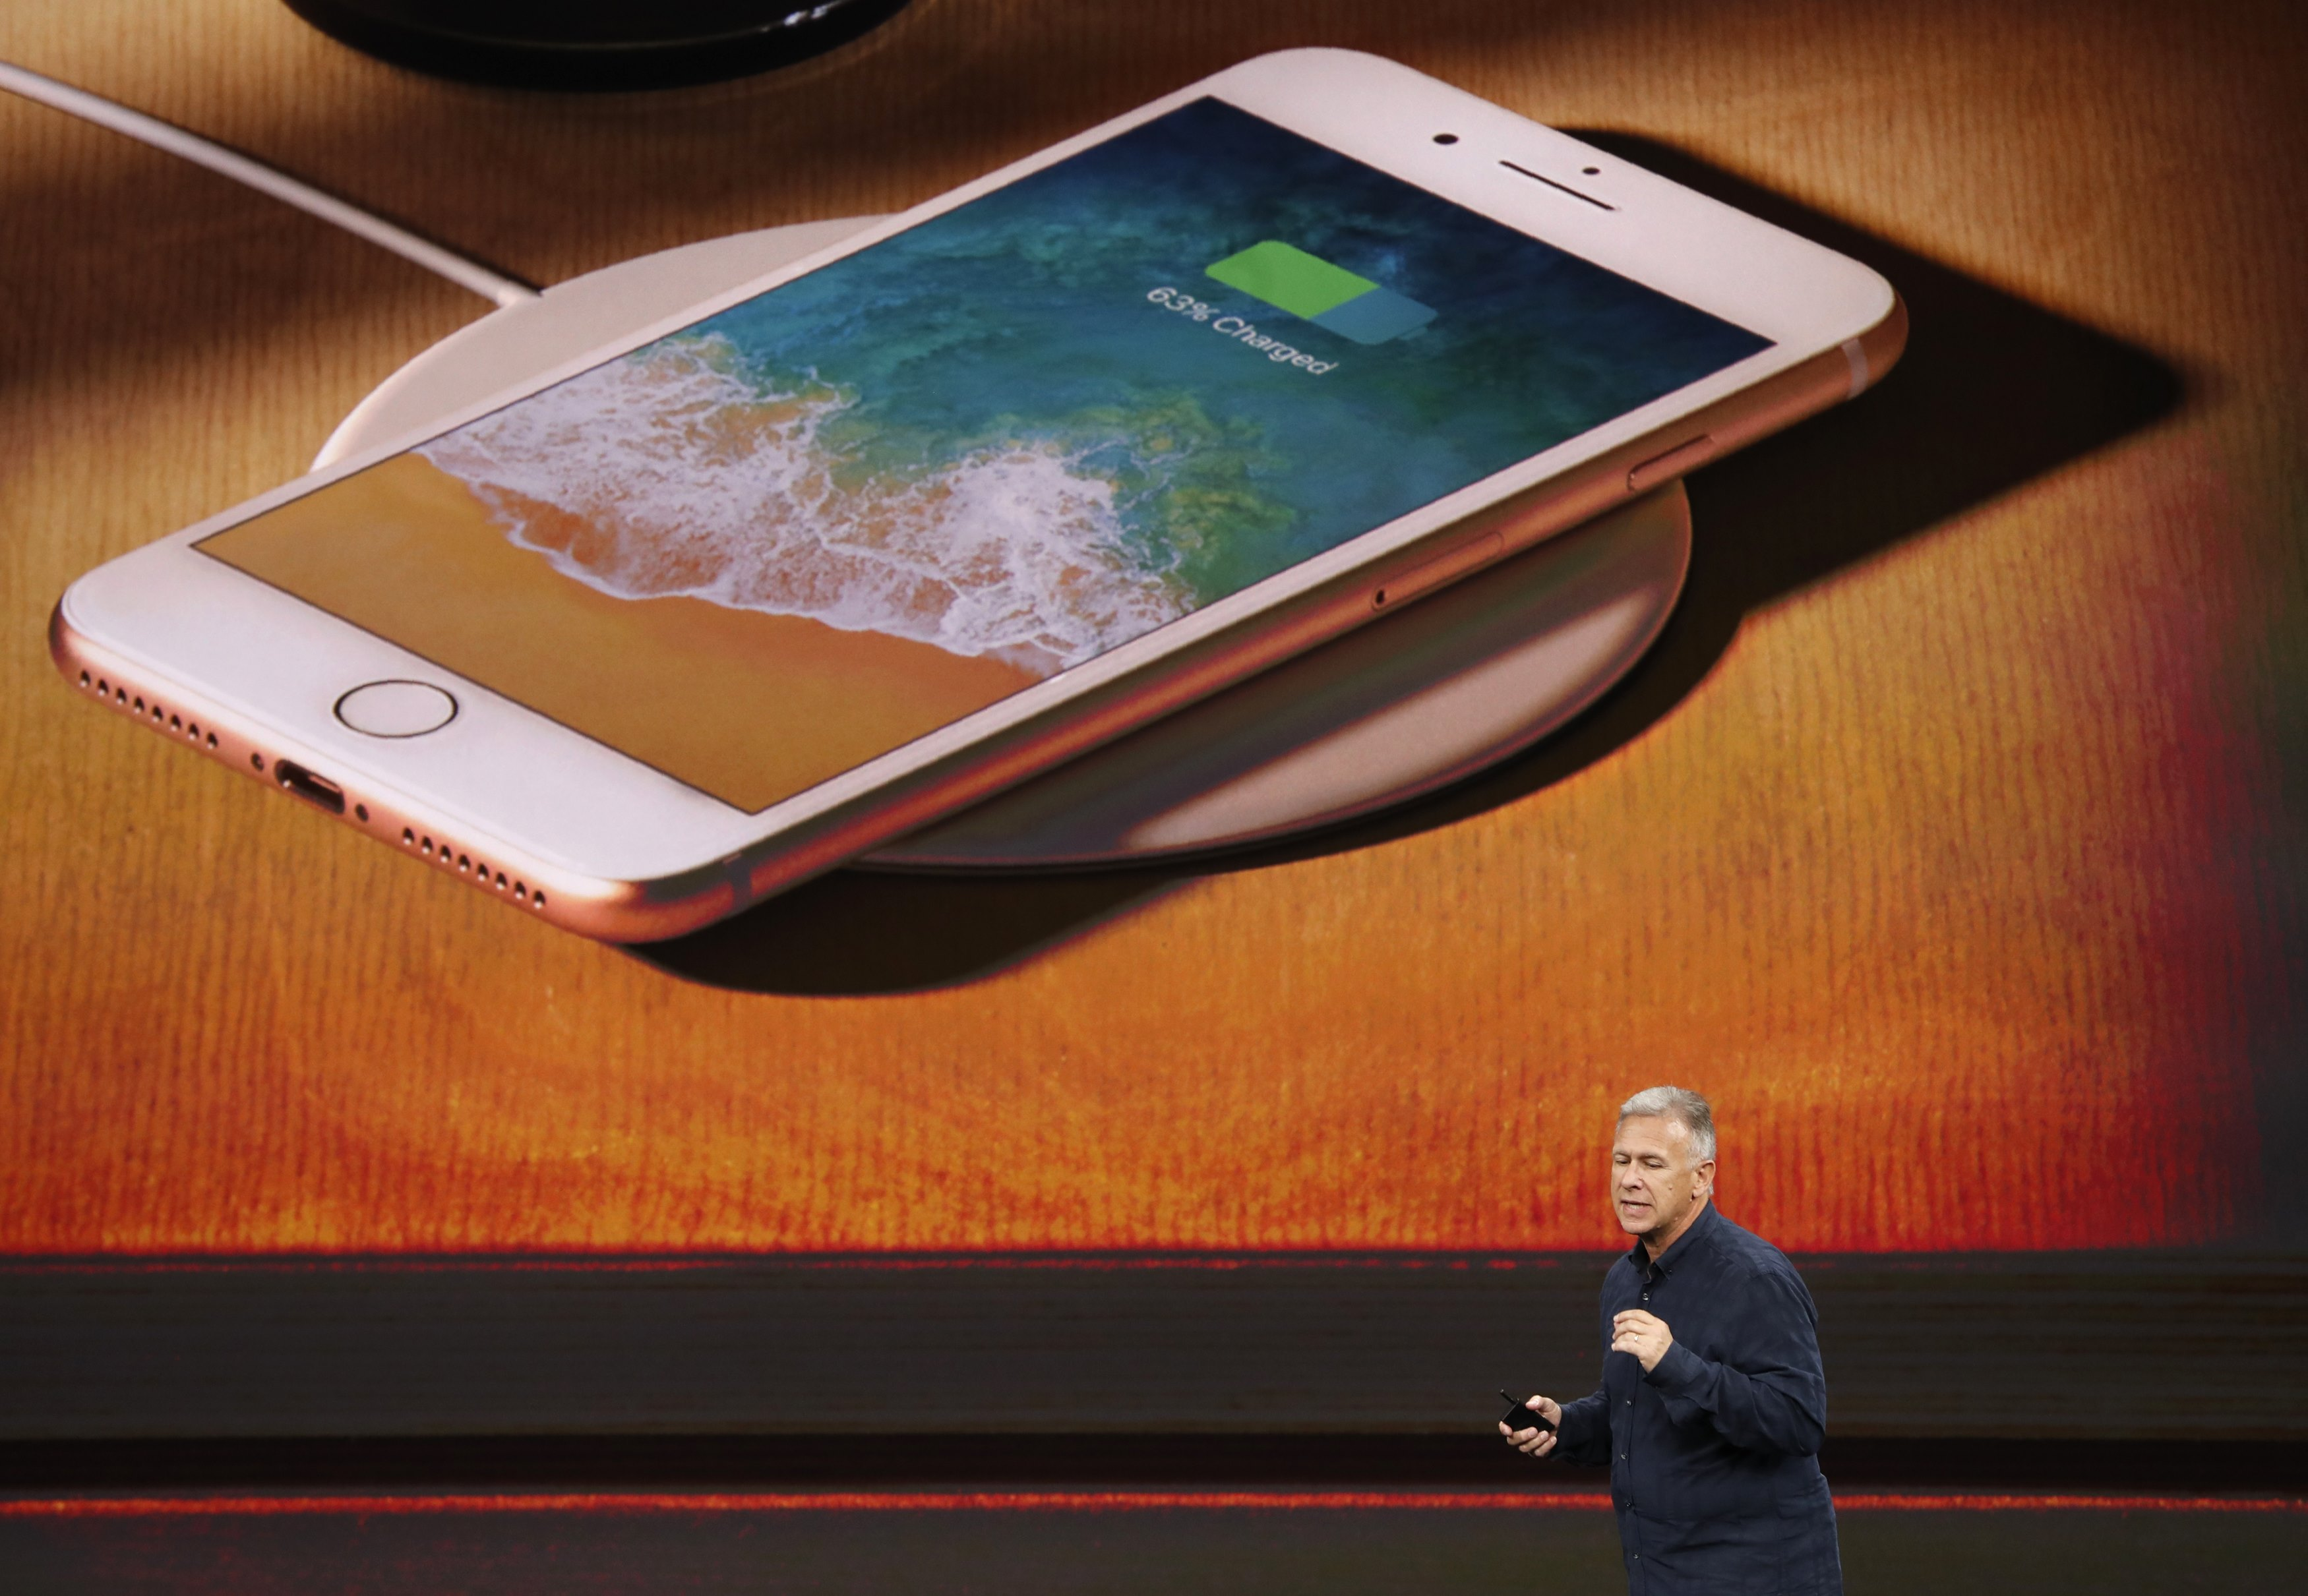 Apple Senior Vice President of Worldwide Marketing, Phil Schiller, introduces the iPhone 8 during a launch event in Cupertino, Calif., on Sept. 12, 2017. (REUTERS/Stephen Lam)